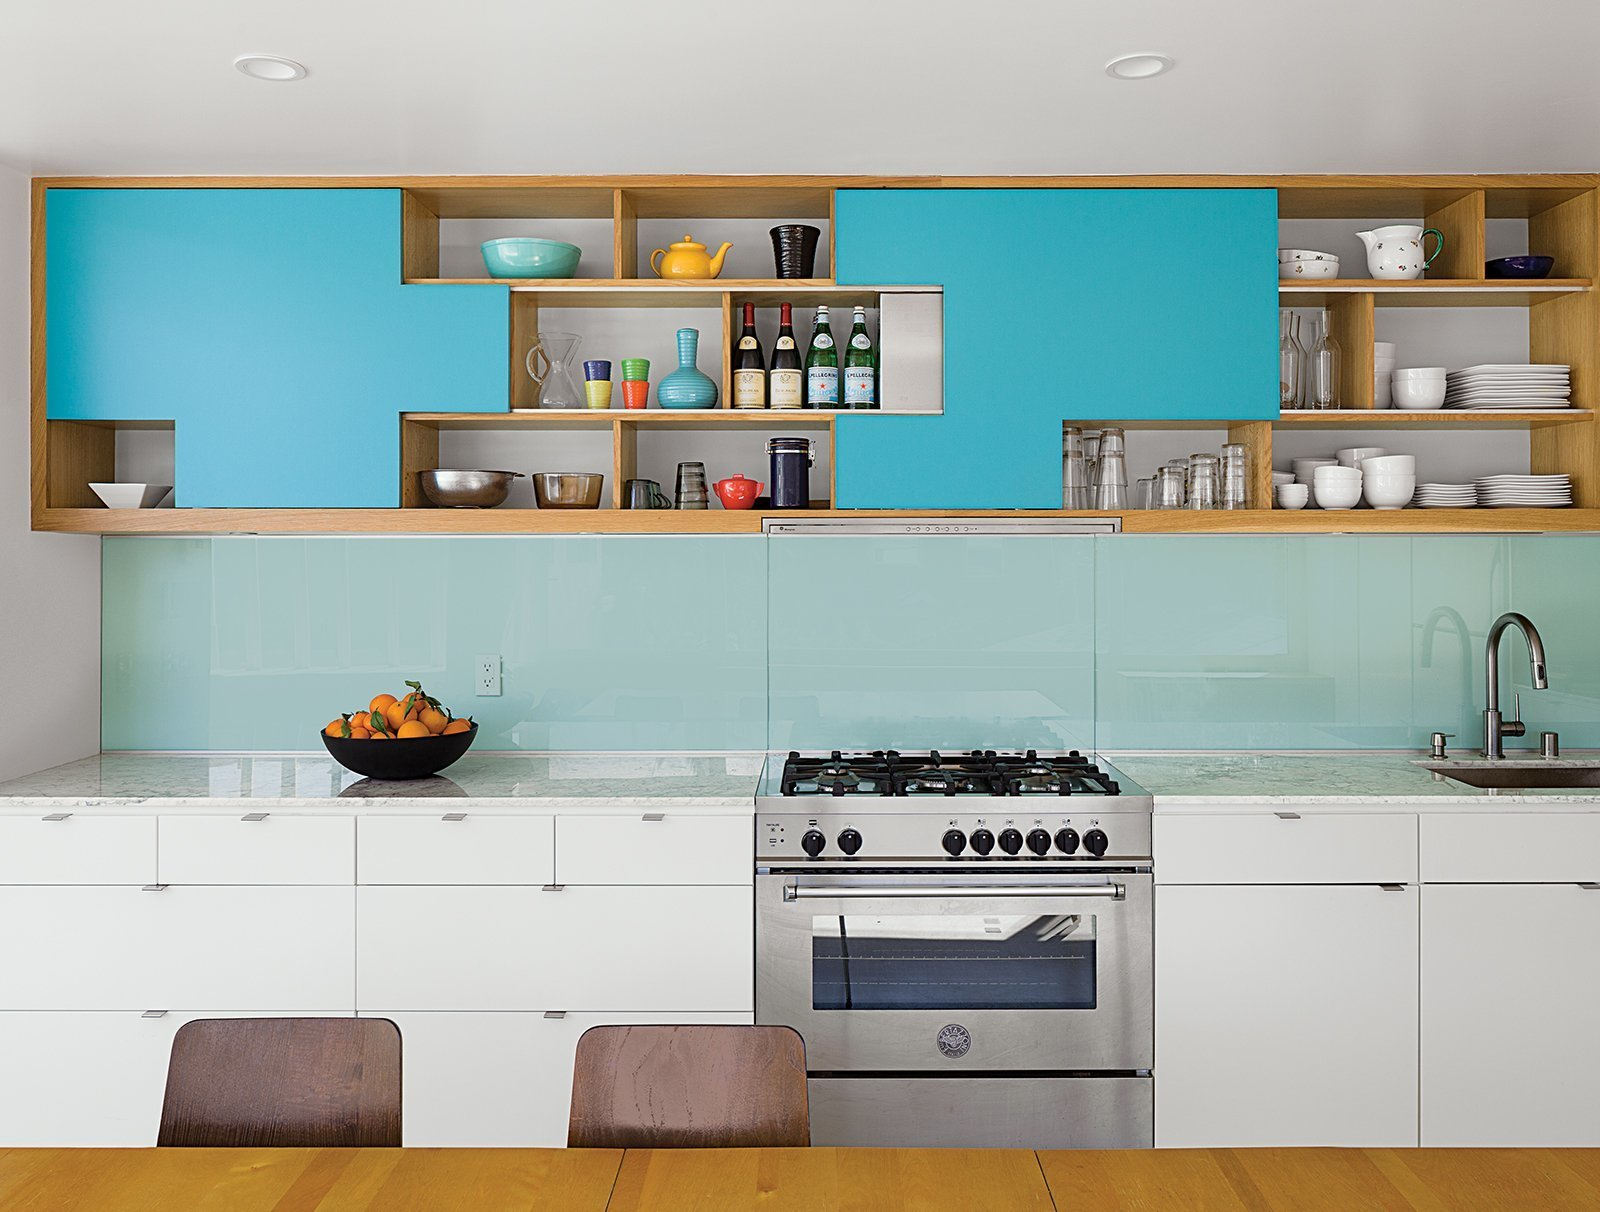 9 Great Kitchen Cabinet Ideas | Architecture, Design & Competitions ...